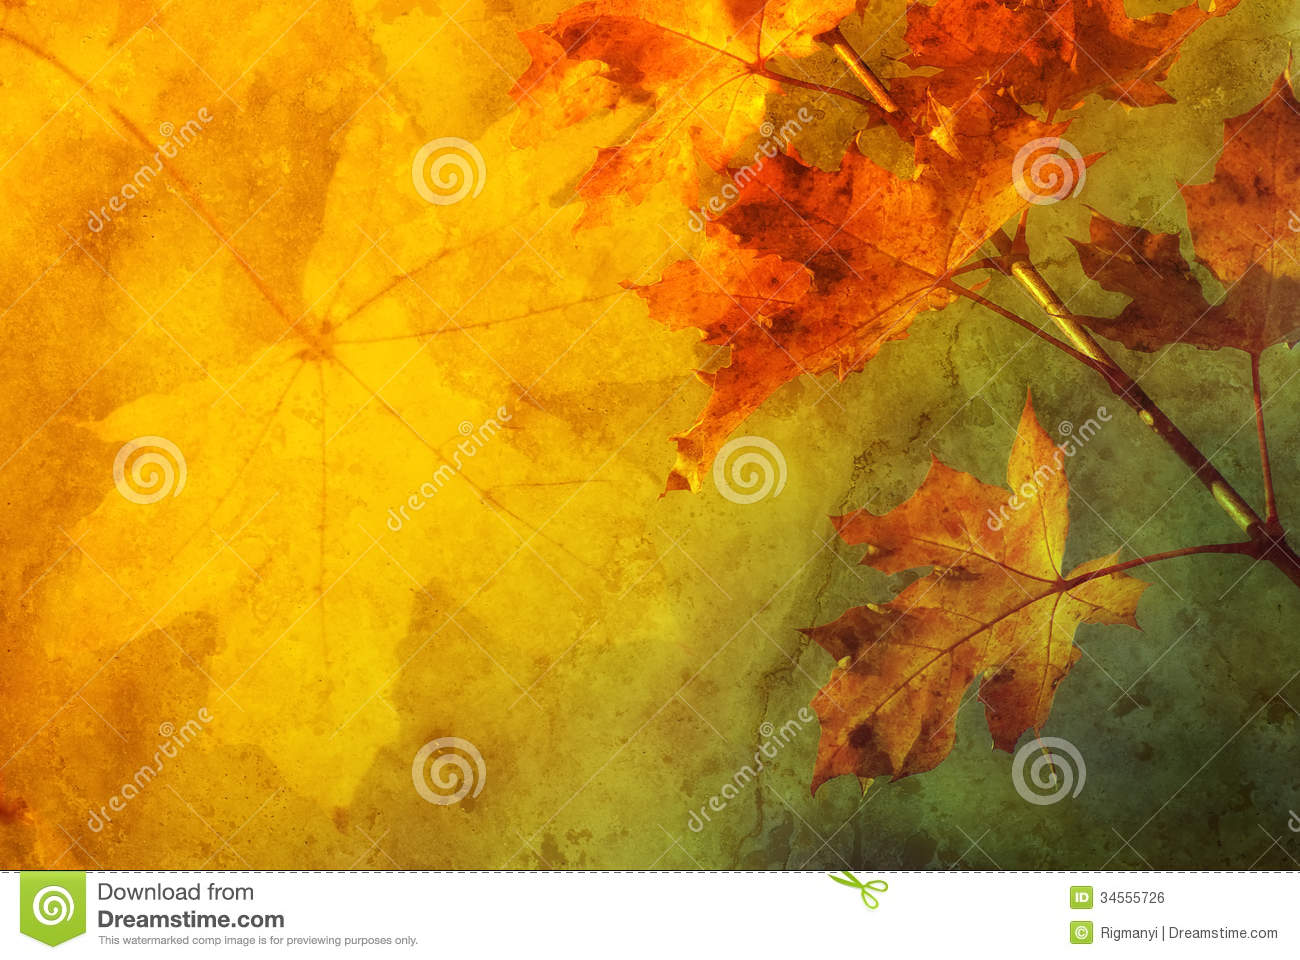 hight resolution of autumn abstract royalty free stock image image 34555726 boat clip art boat clip art